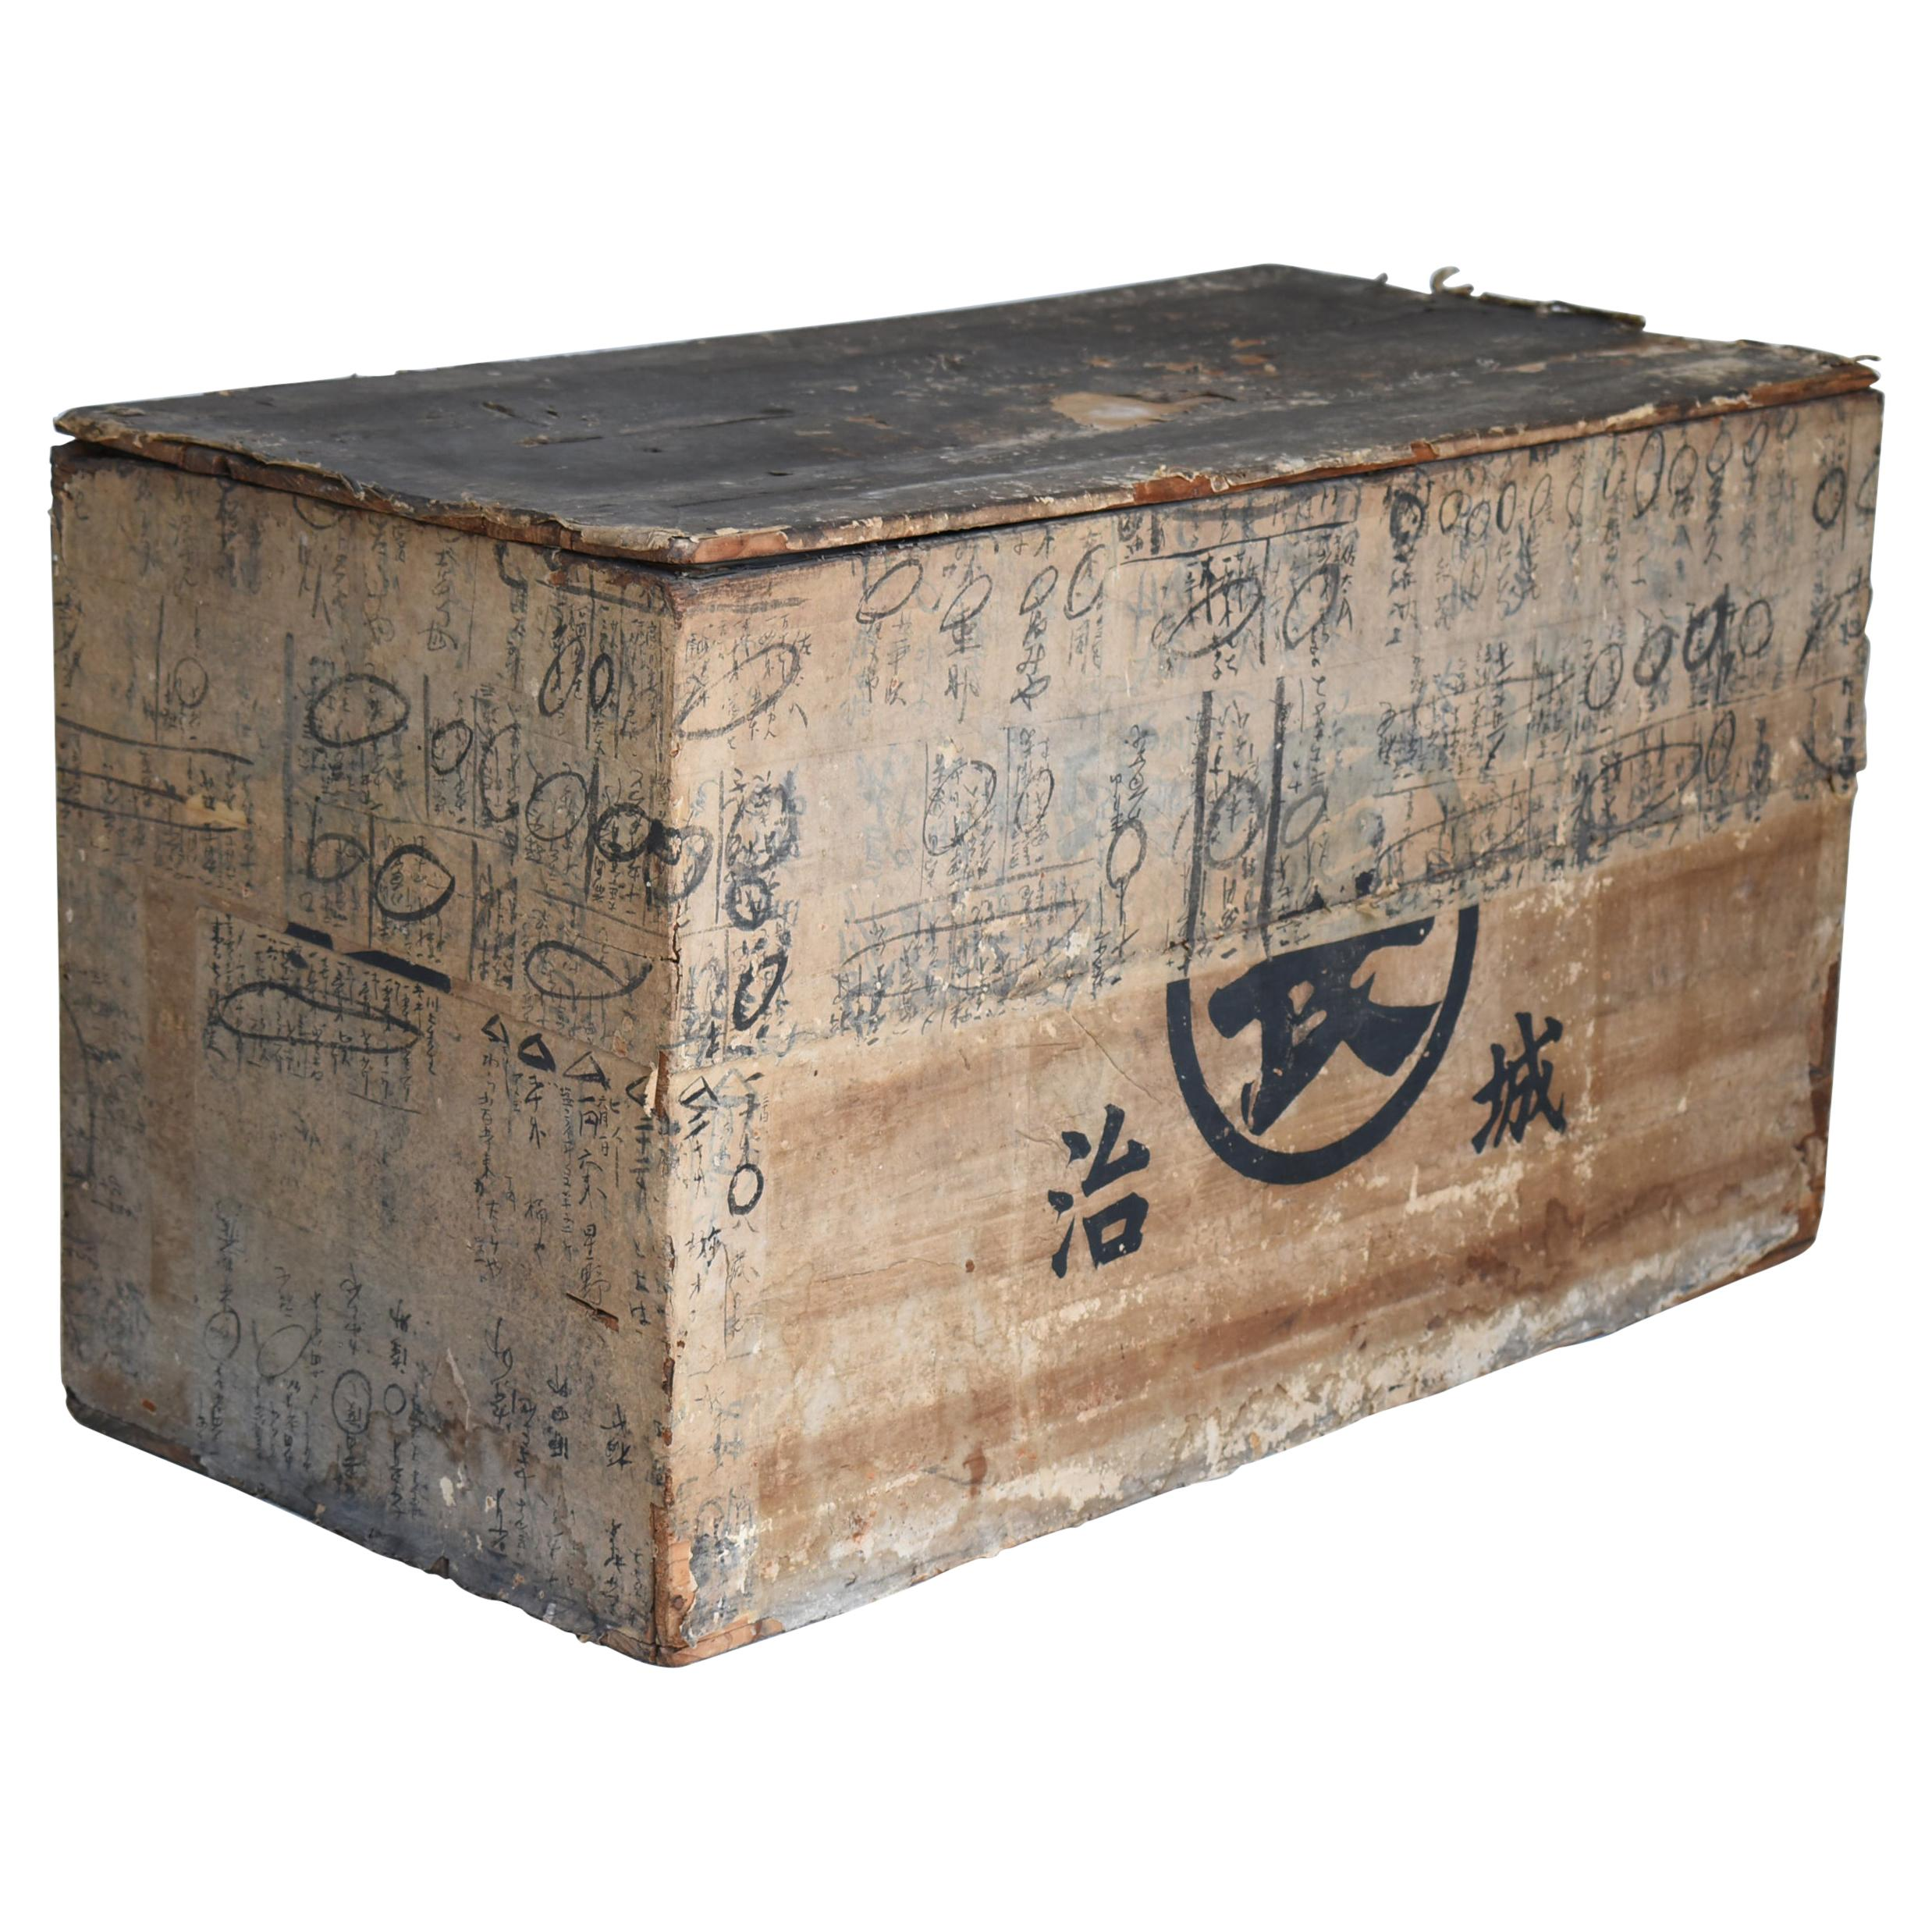 Japanese Old Wooden Box 1860s-1920s/Antique Storage Sideboard Table Wabisabi Art